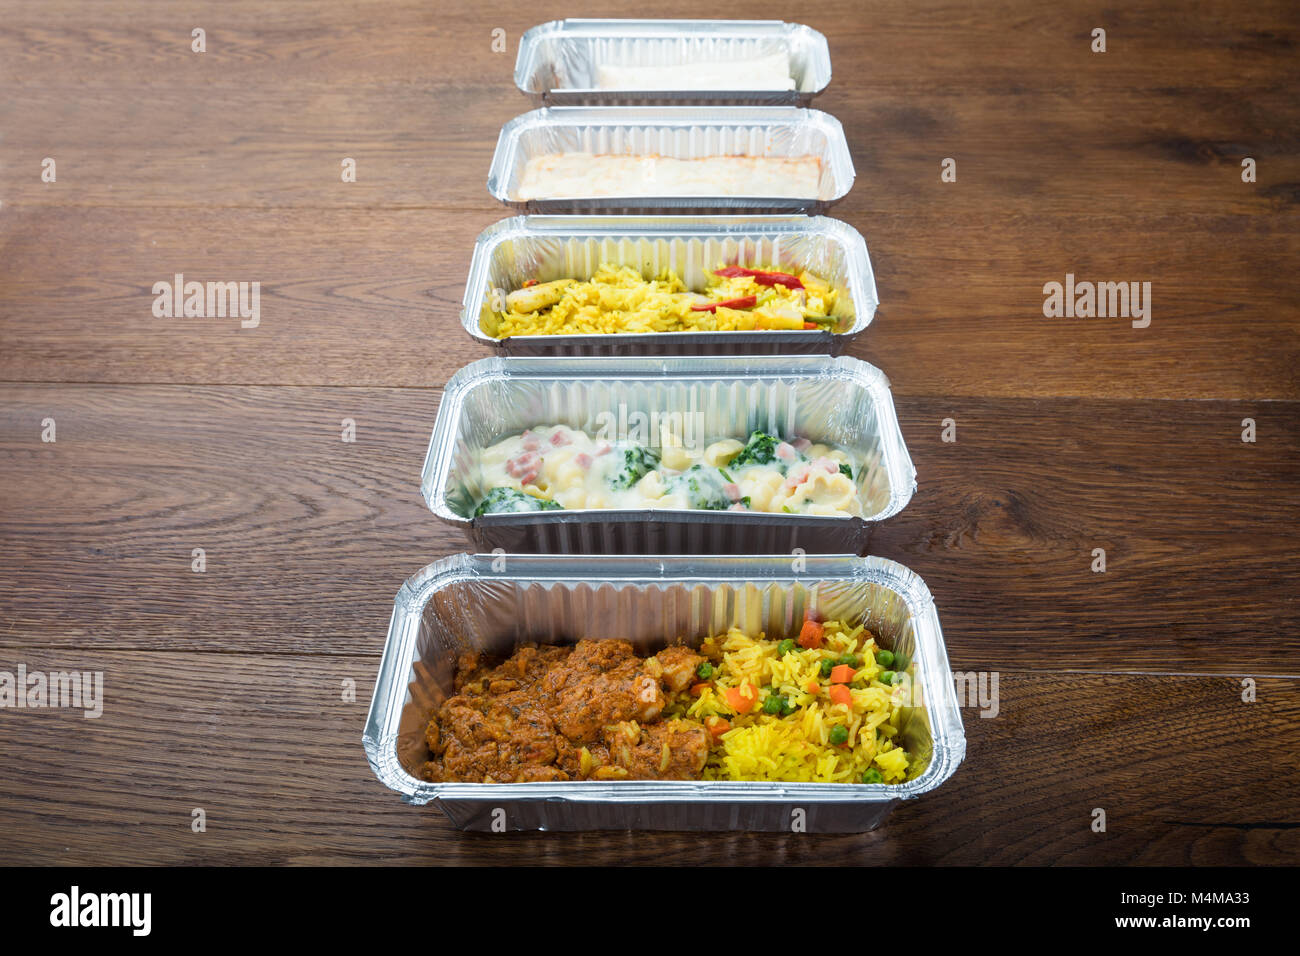 Row Of Take Away Dishes In Foil Container On Wooden Table Stock